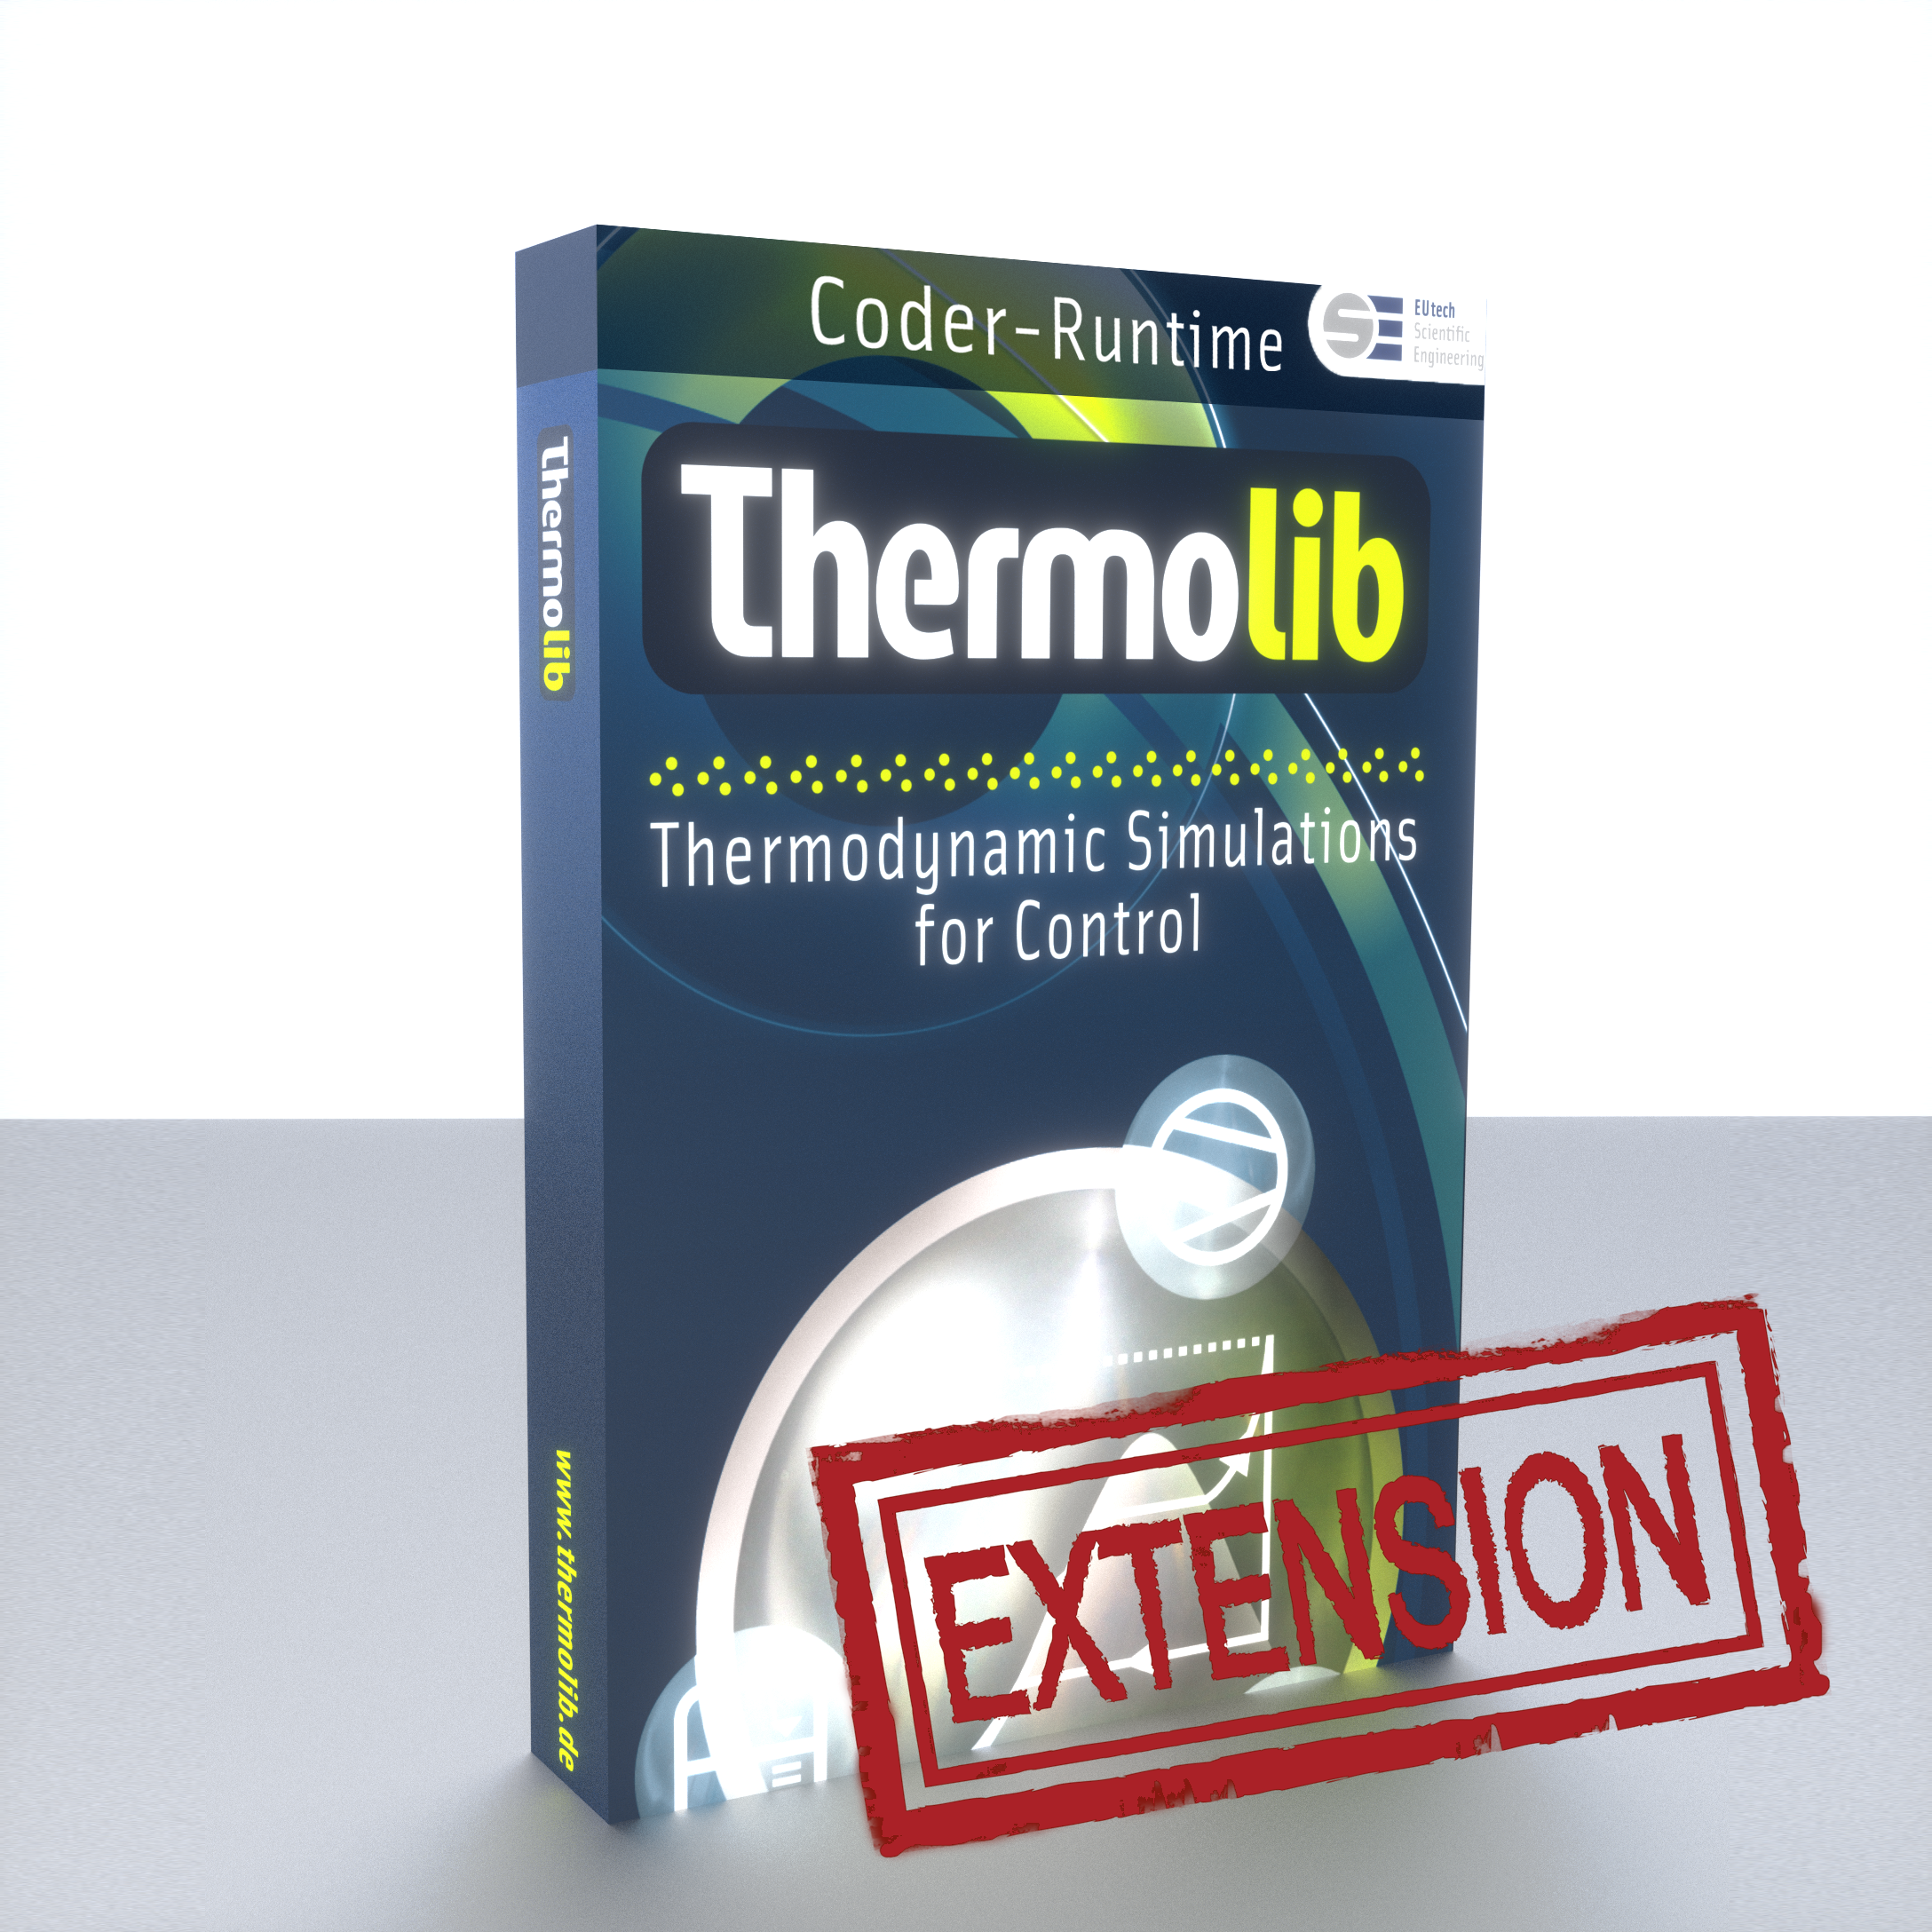 Thermolib Coder Runtime